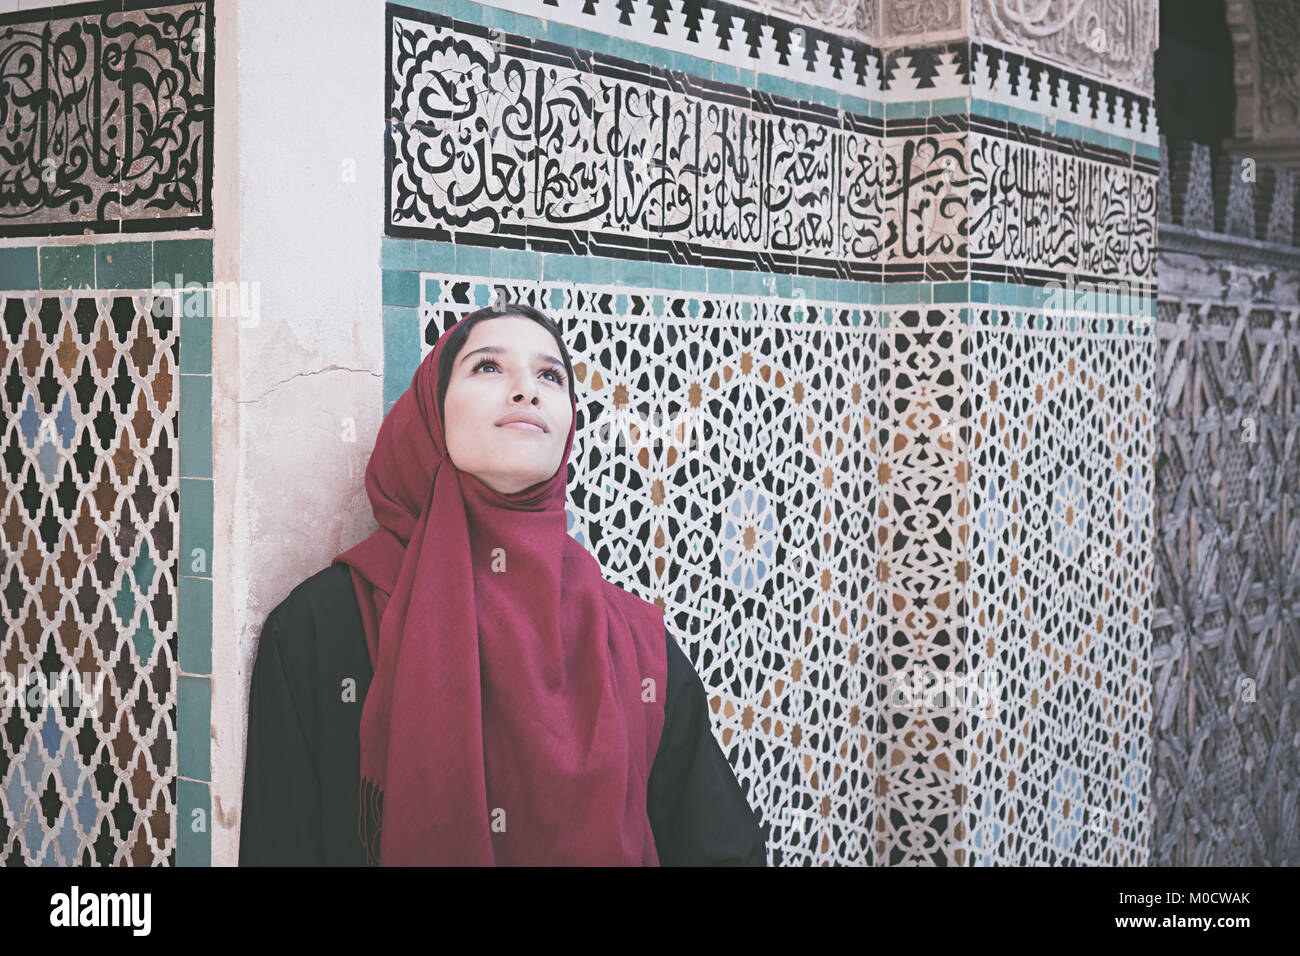 Arab woman in traditional clothing with red hijab in front of the wall with text from Koran - Stock Image